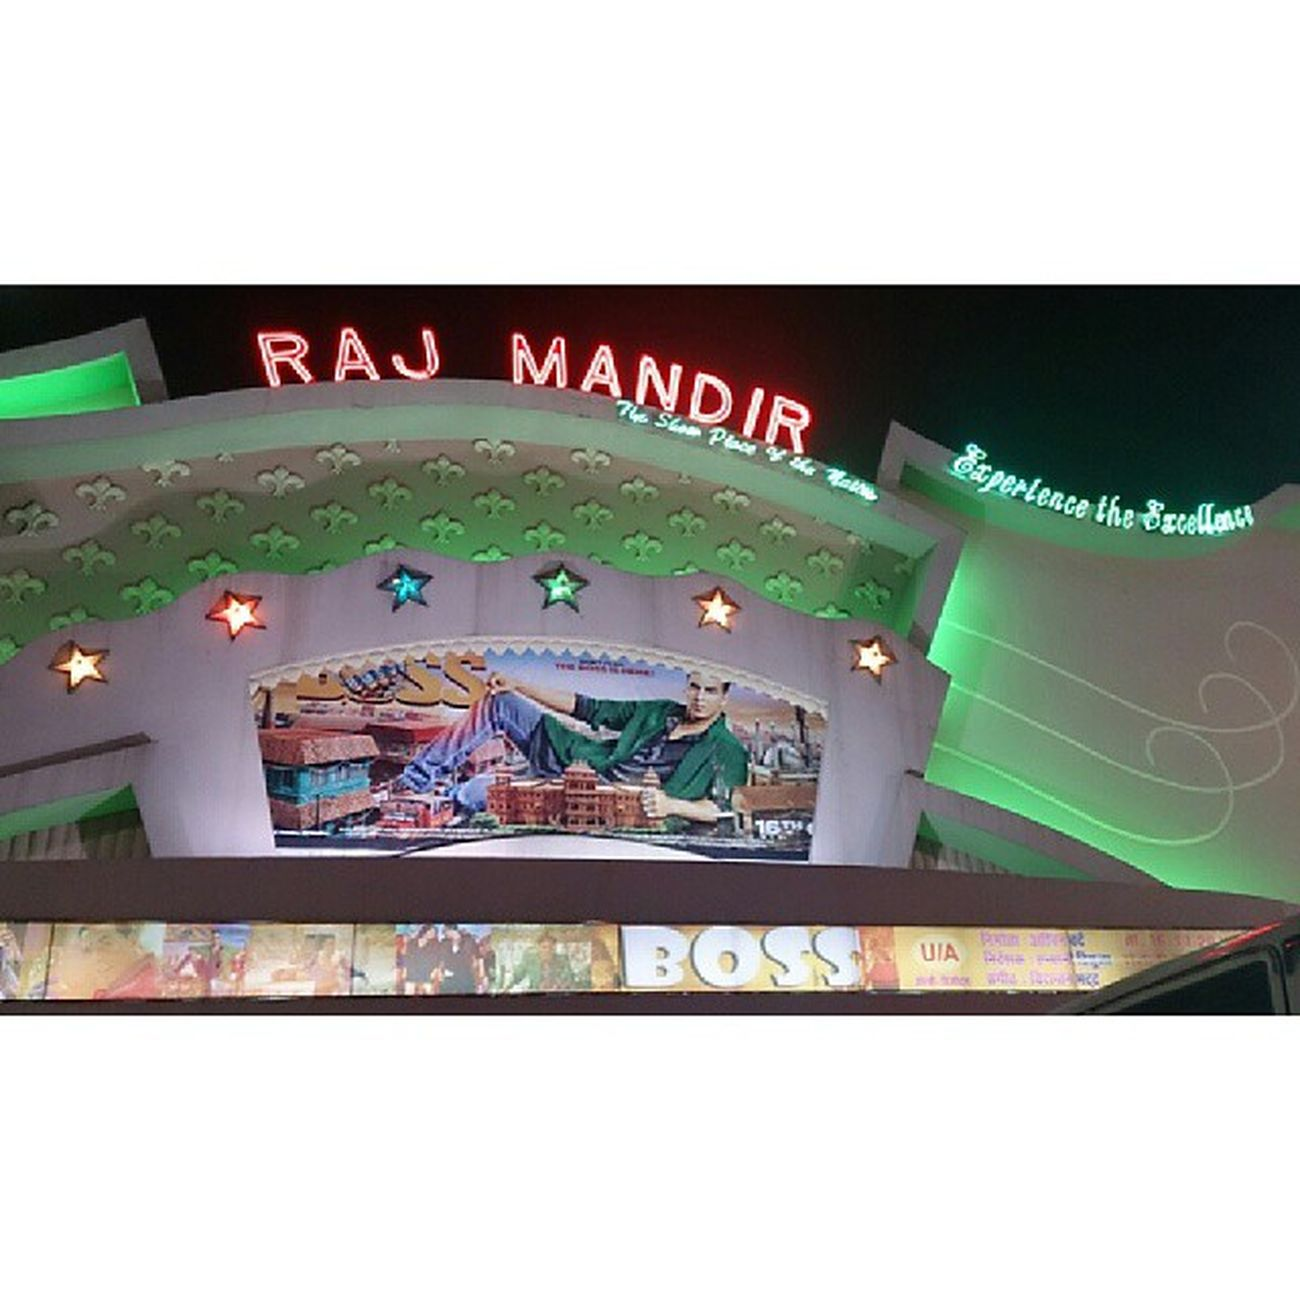 Jaipur RajMandir Boss MOVIE Hit Awesome AkshayKumar Holiday Asias Largest MOVIE Hall Evening Fun Love